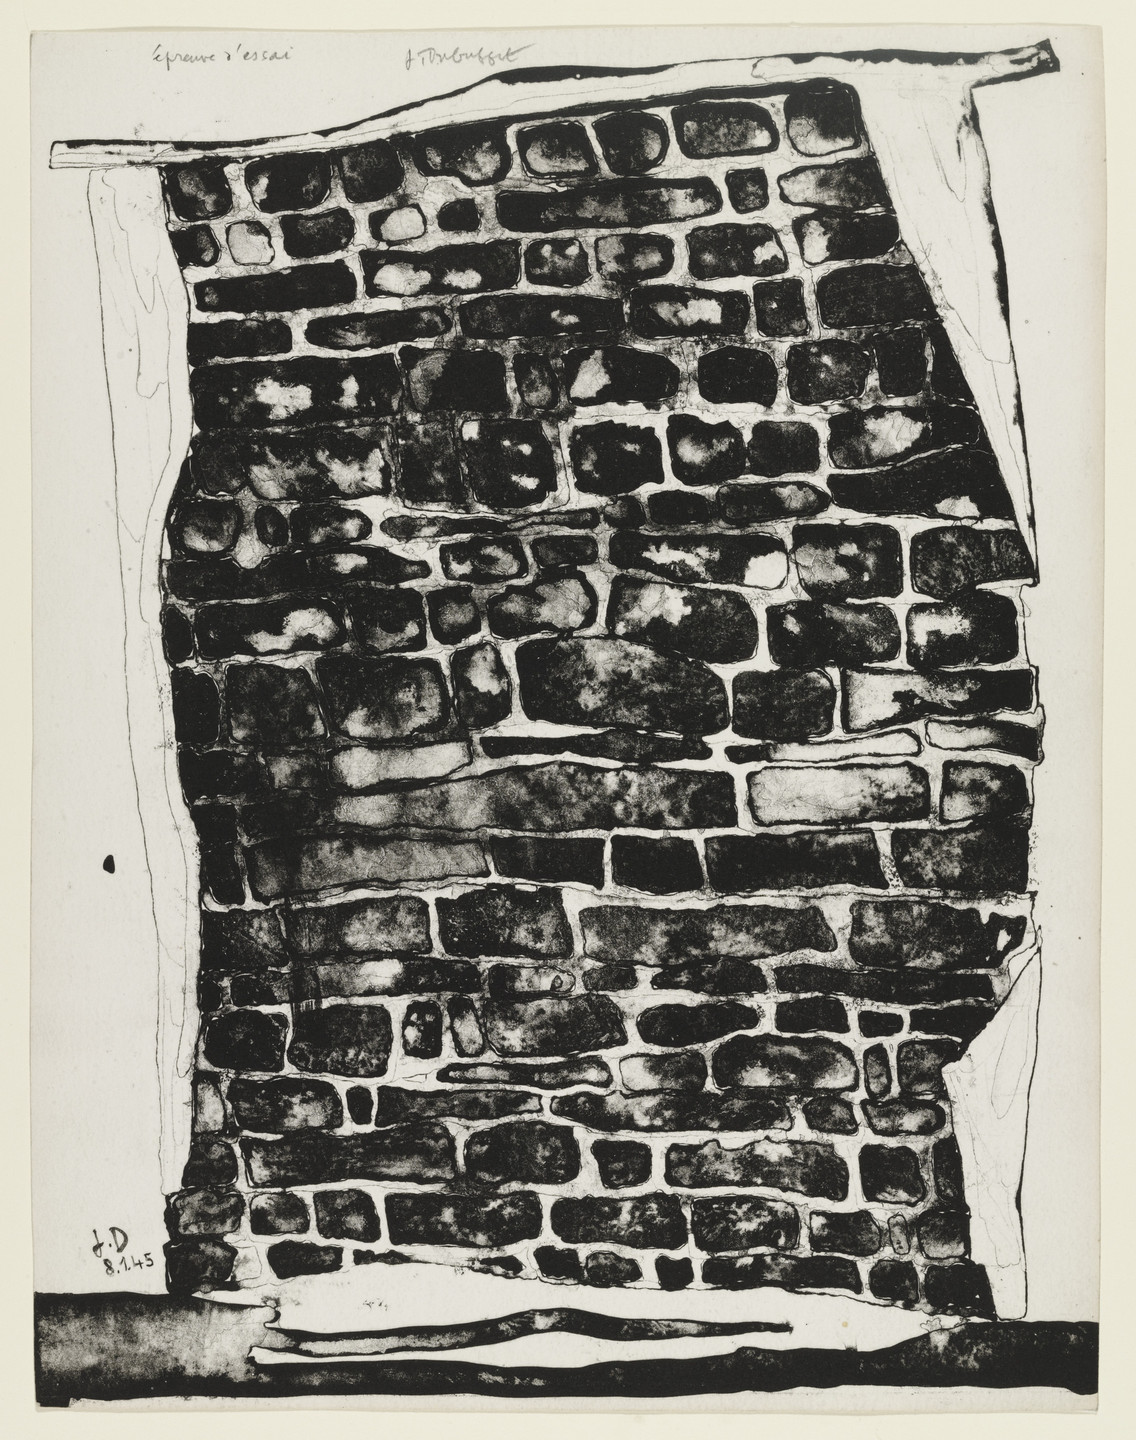 Jean Dubuffet. Section of a Sagging Wall (Pan de mur ventru) from the supplementary suite for the book Les Murs by Eugène Guillevic. 1945